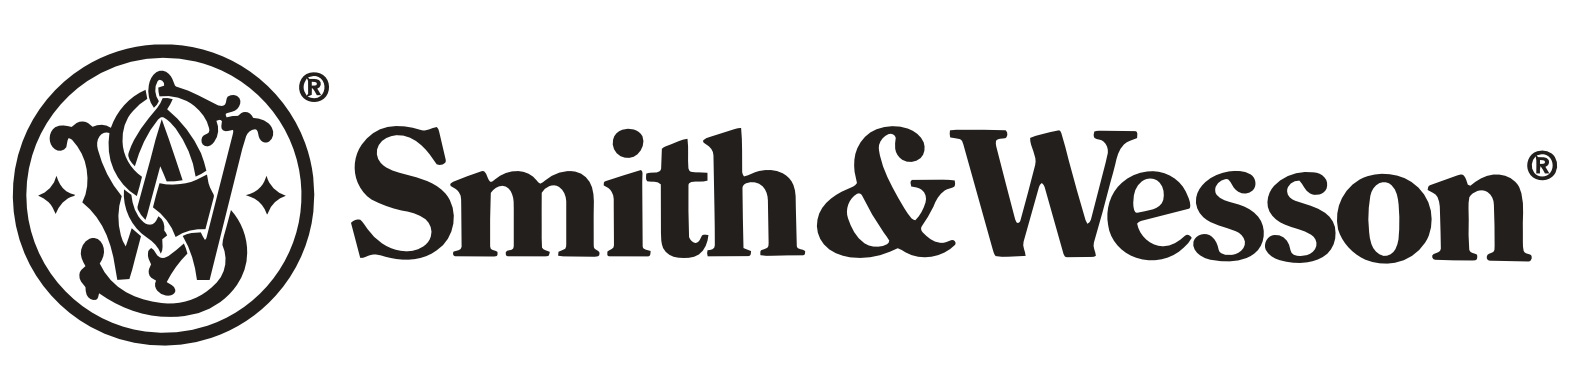 smith and wesson logo